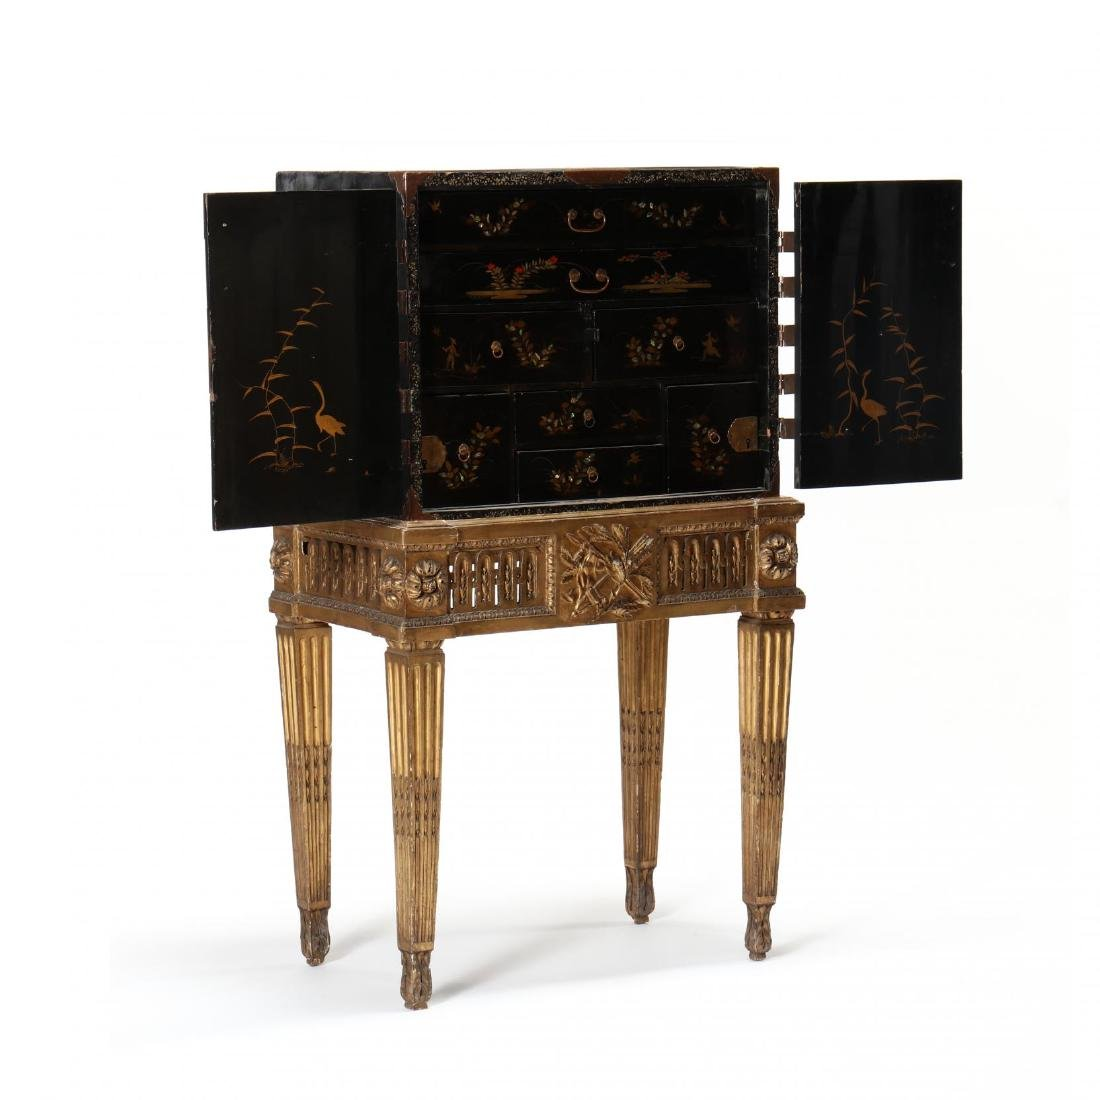 A Japanese Lacquered Cabinet on a Carved Giltwood Stand - 2